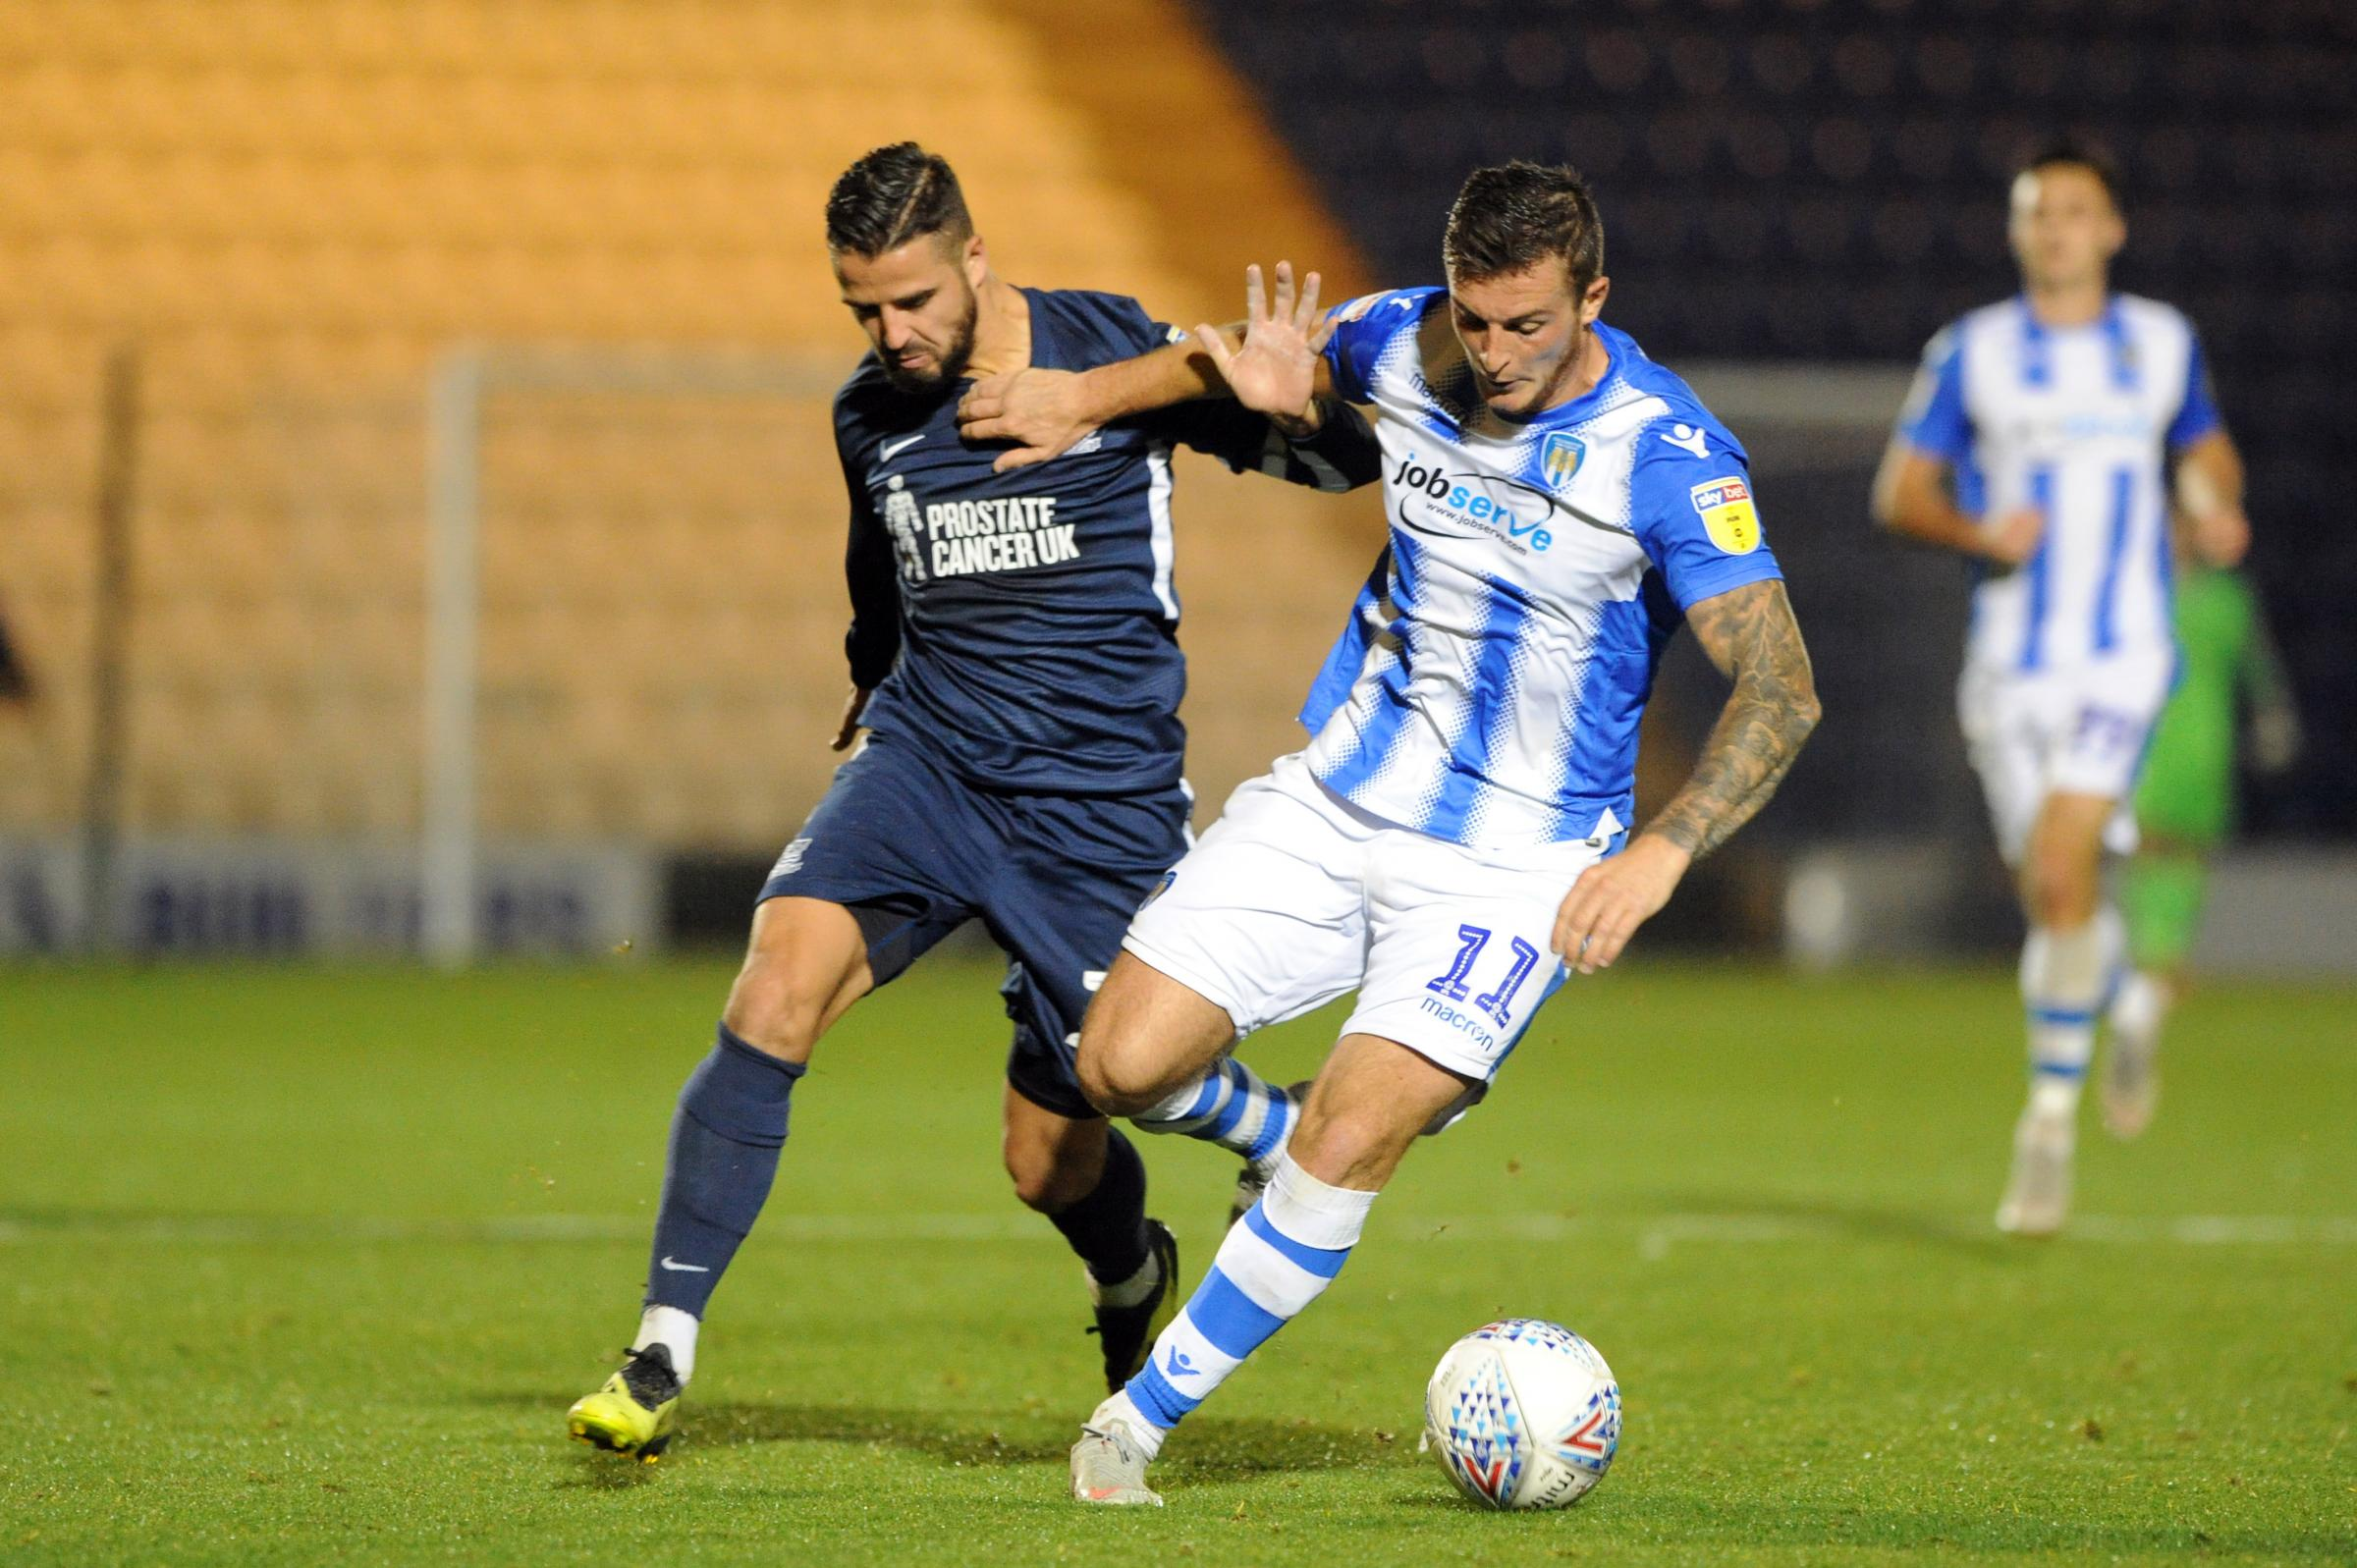 Looking to get back into the team - Southend United winger Stephen McLaughlin